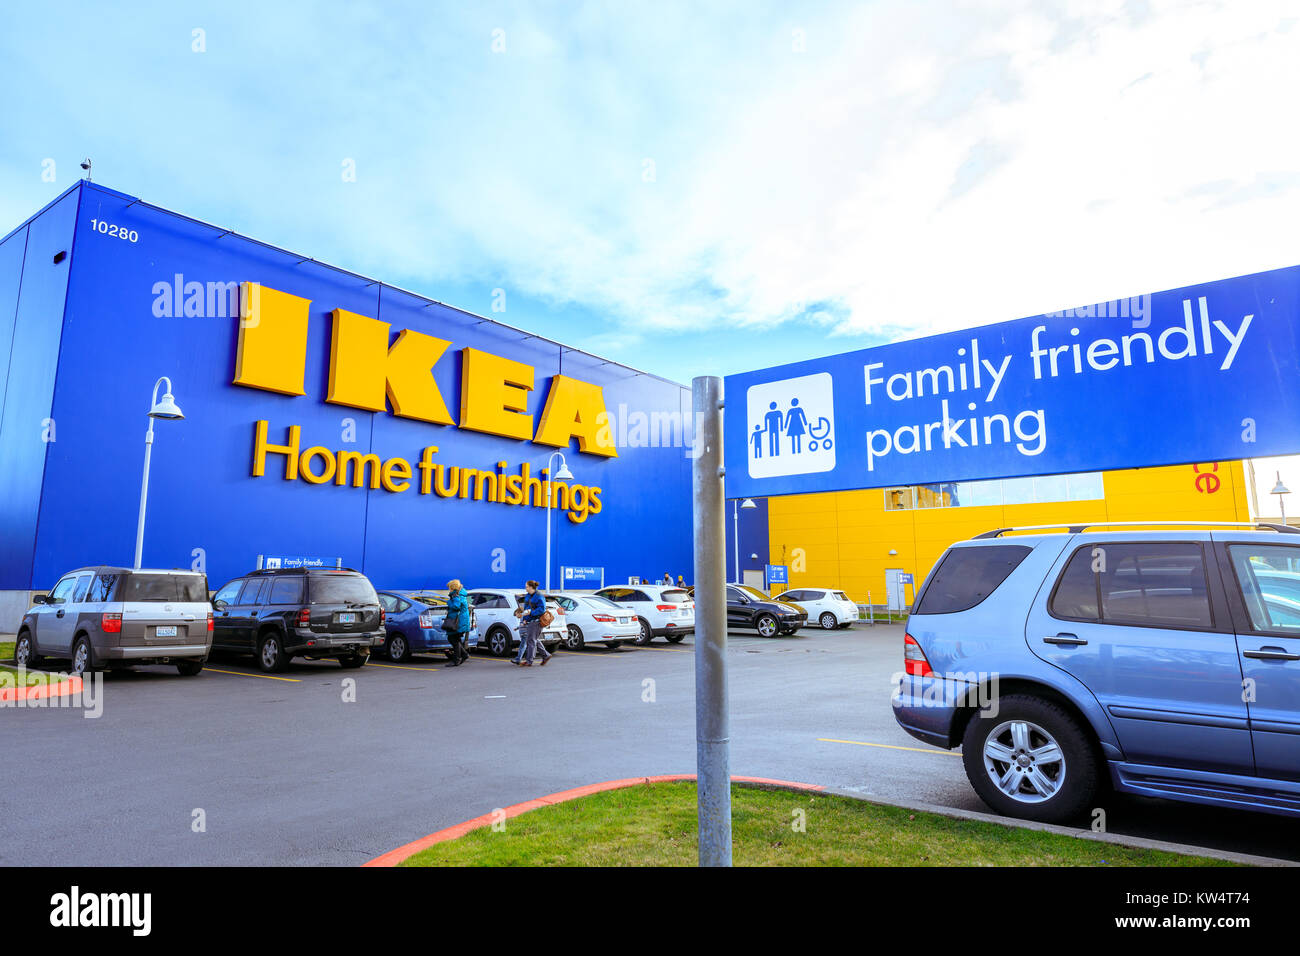 The first large-scale IKEA project in the U.S., the ,square-foot IKEA Elizabeth opened May 23, on 21 acres at exit 13A of the New Jersey Turnpike. IKEA expanded the location across.